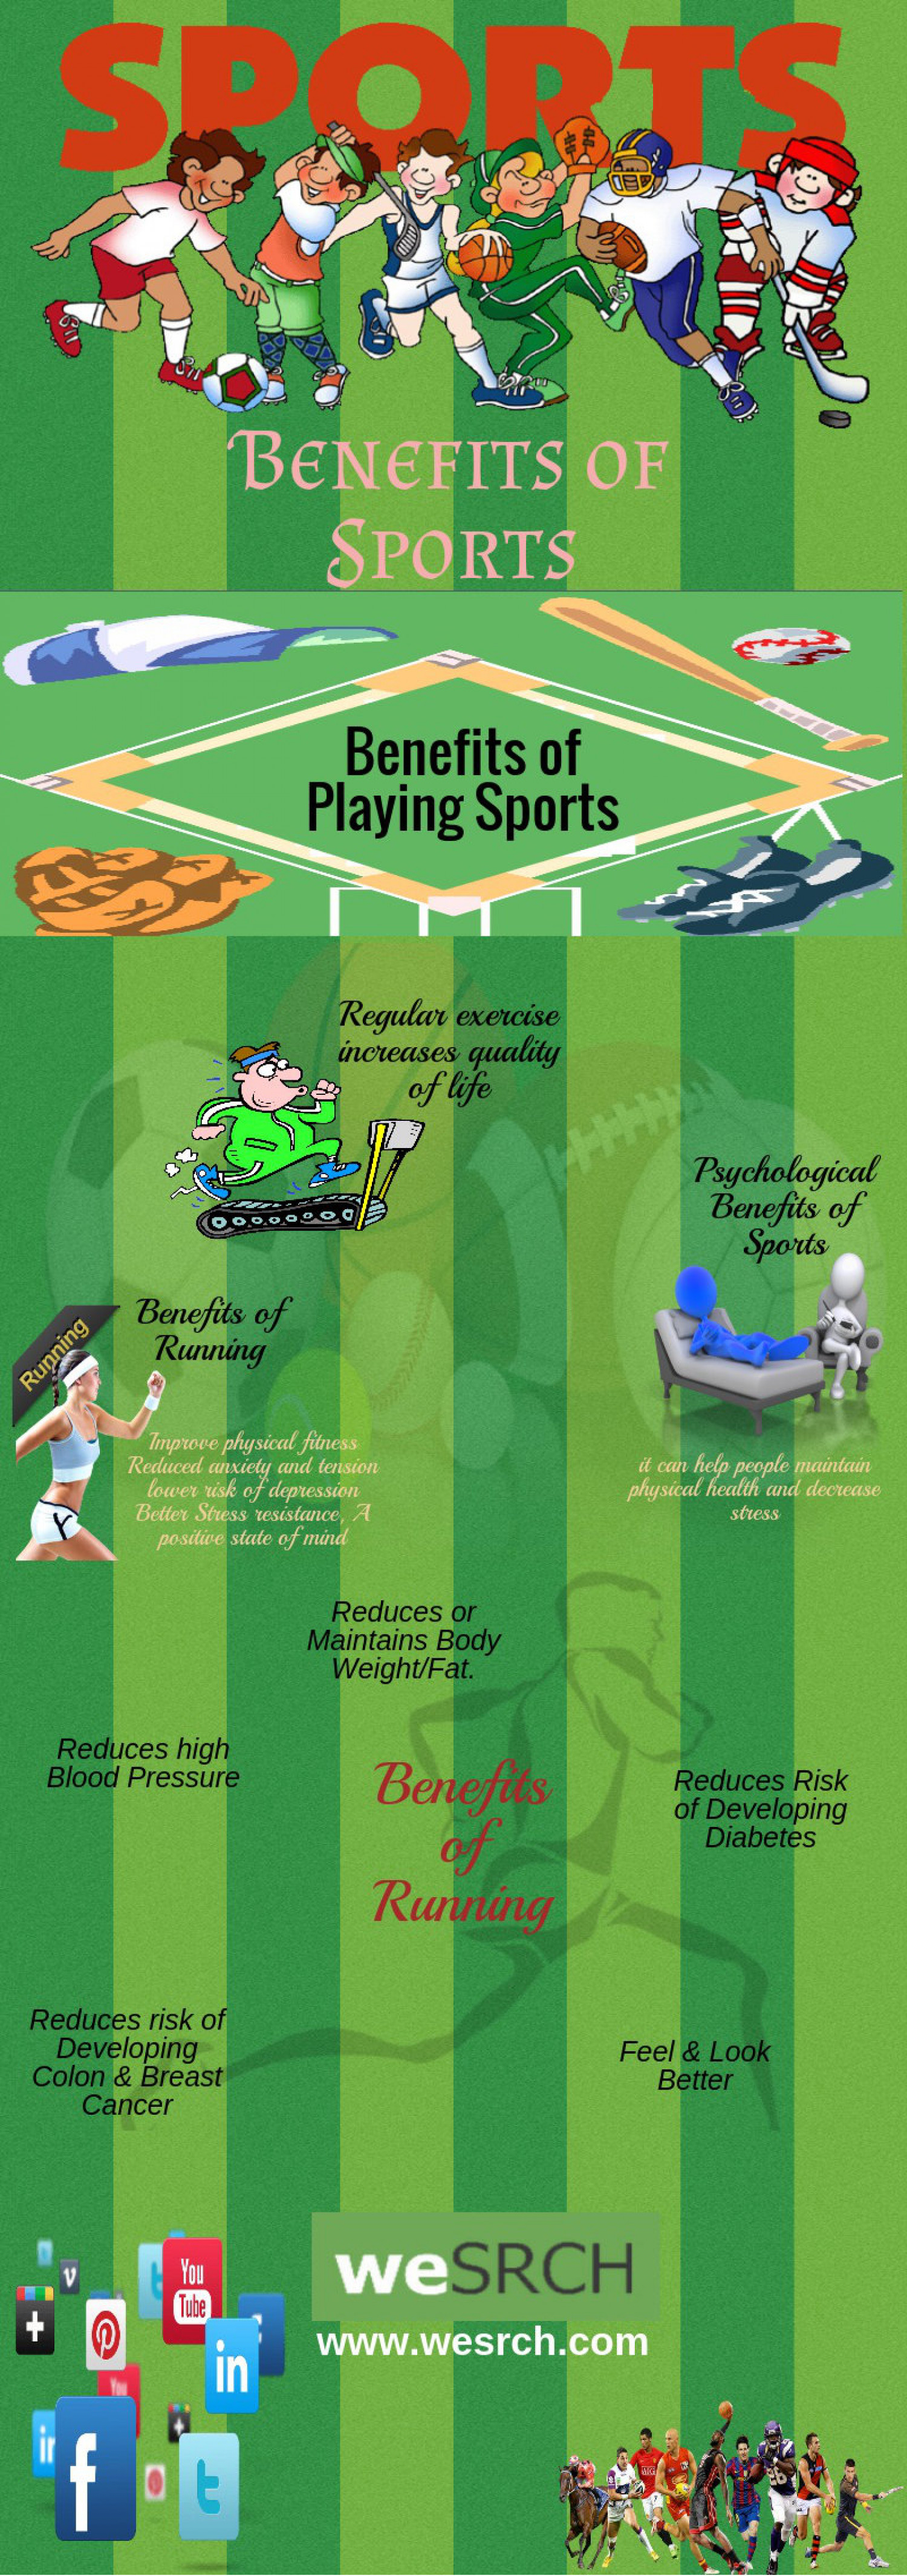 What are the Benefits of Playing Sports Infographic